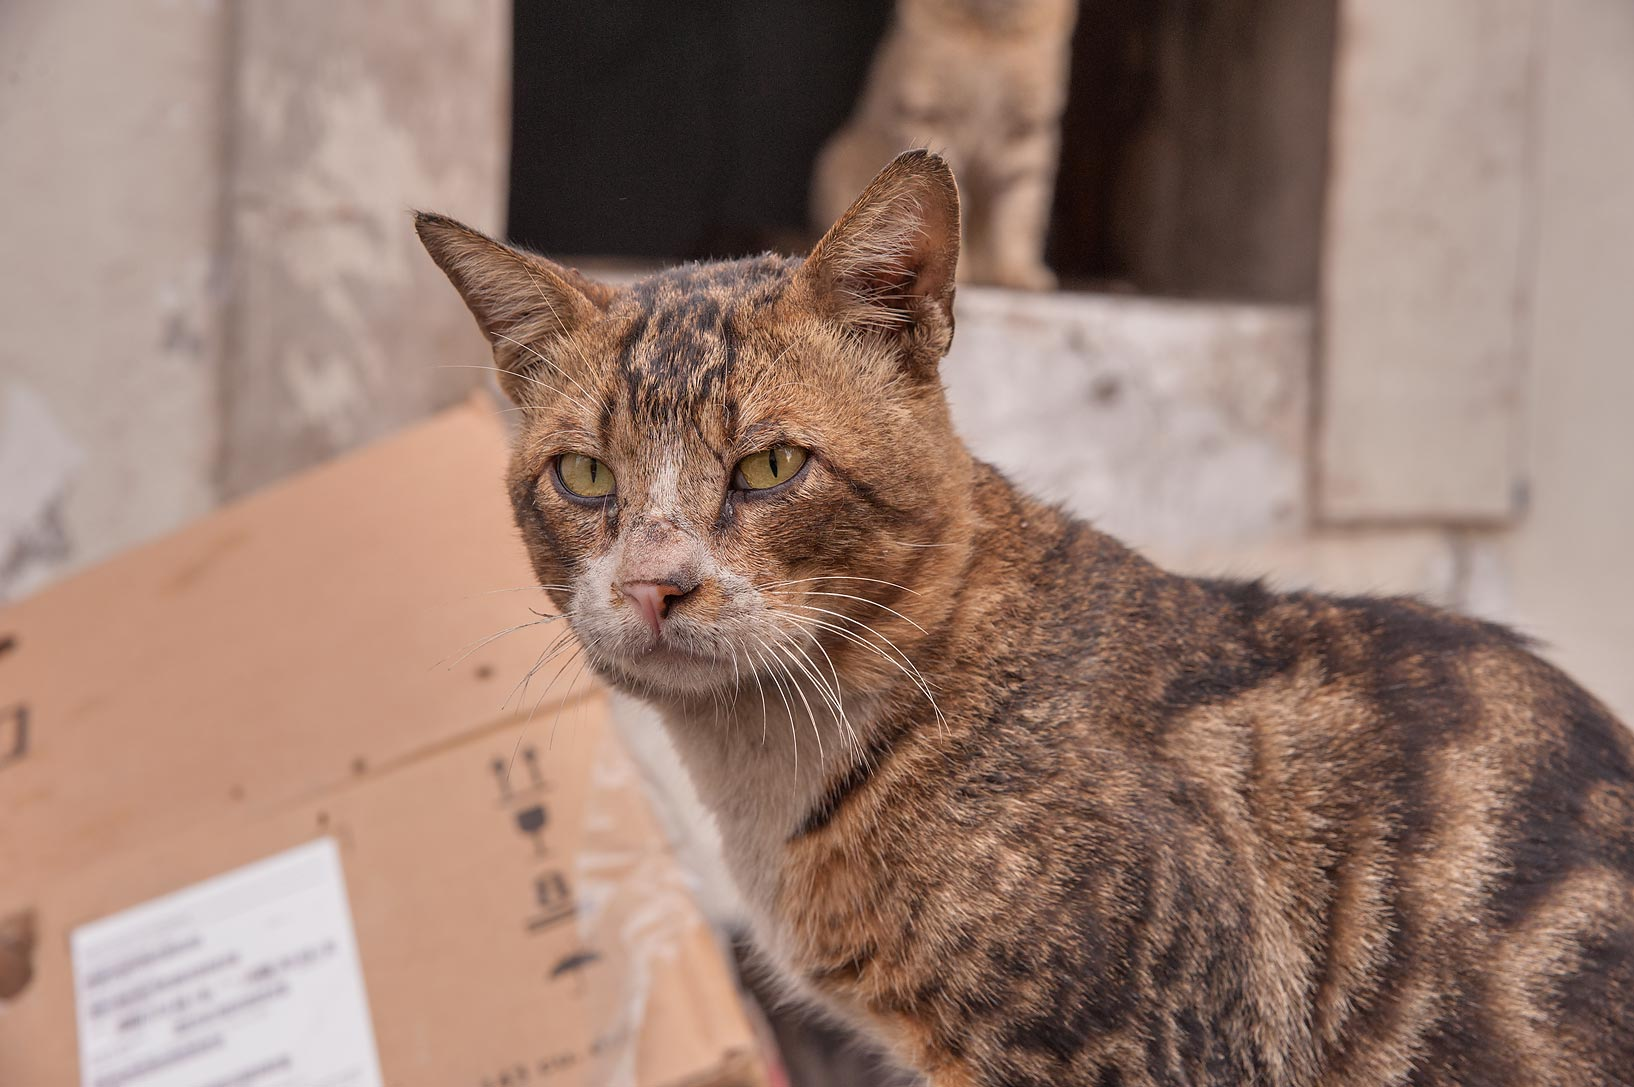 Tabby cat at Zurara Bin Amir St. in Al Doha Al Jadeeda neighborhood. Doha, Qatar